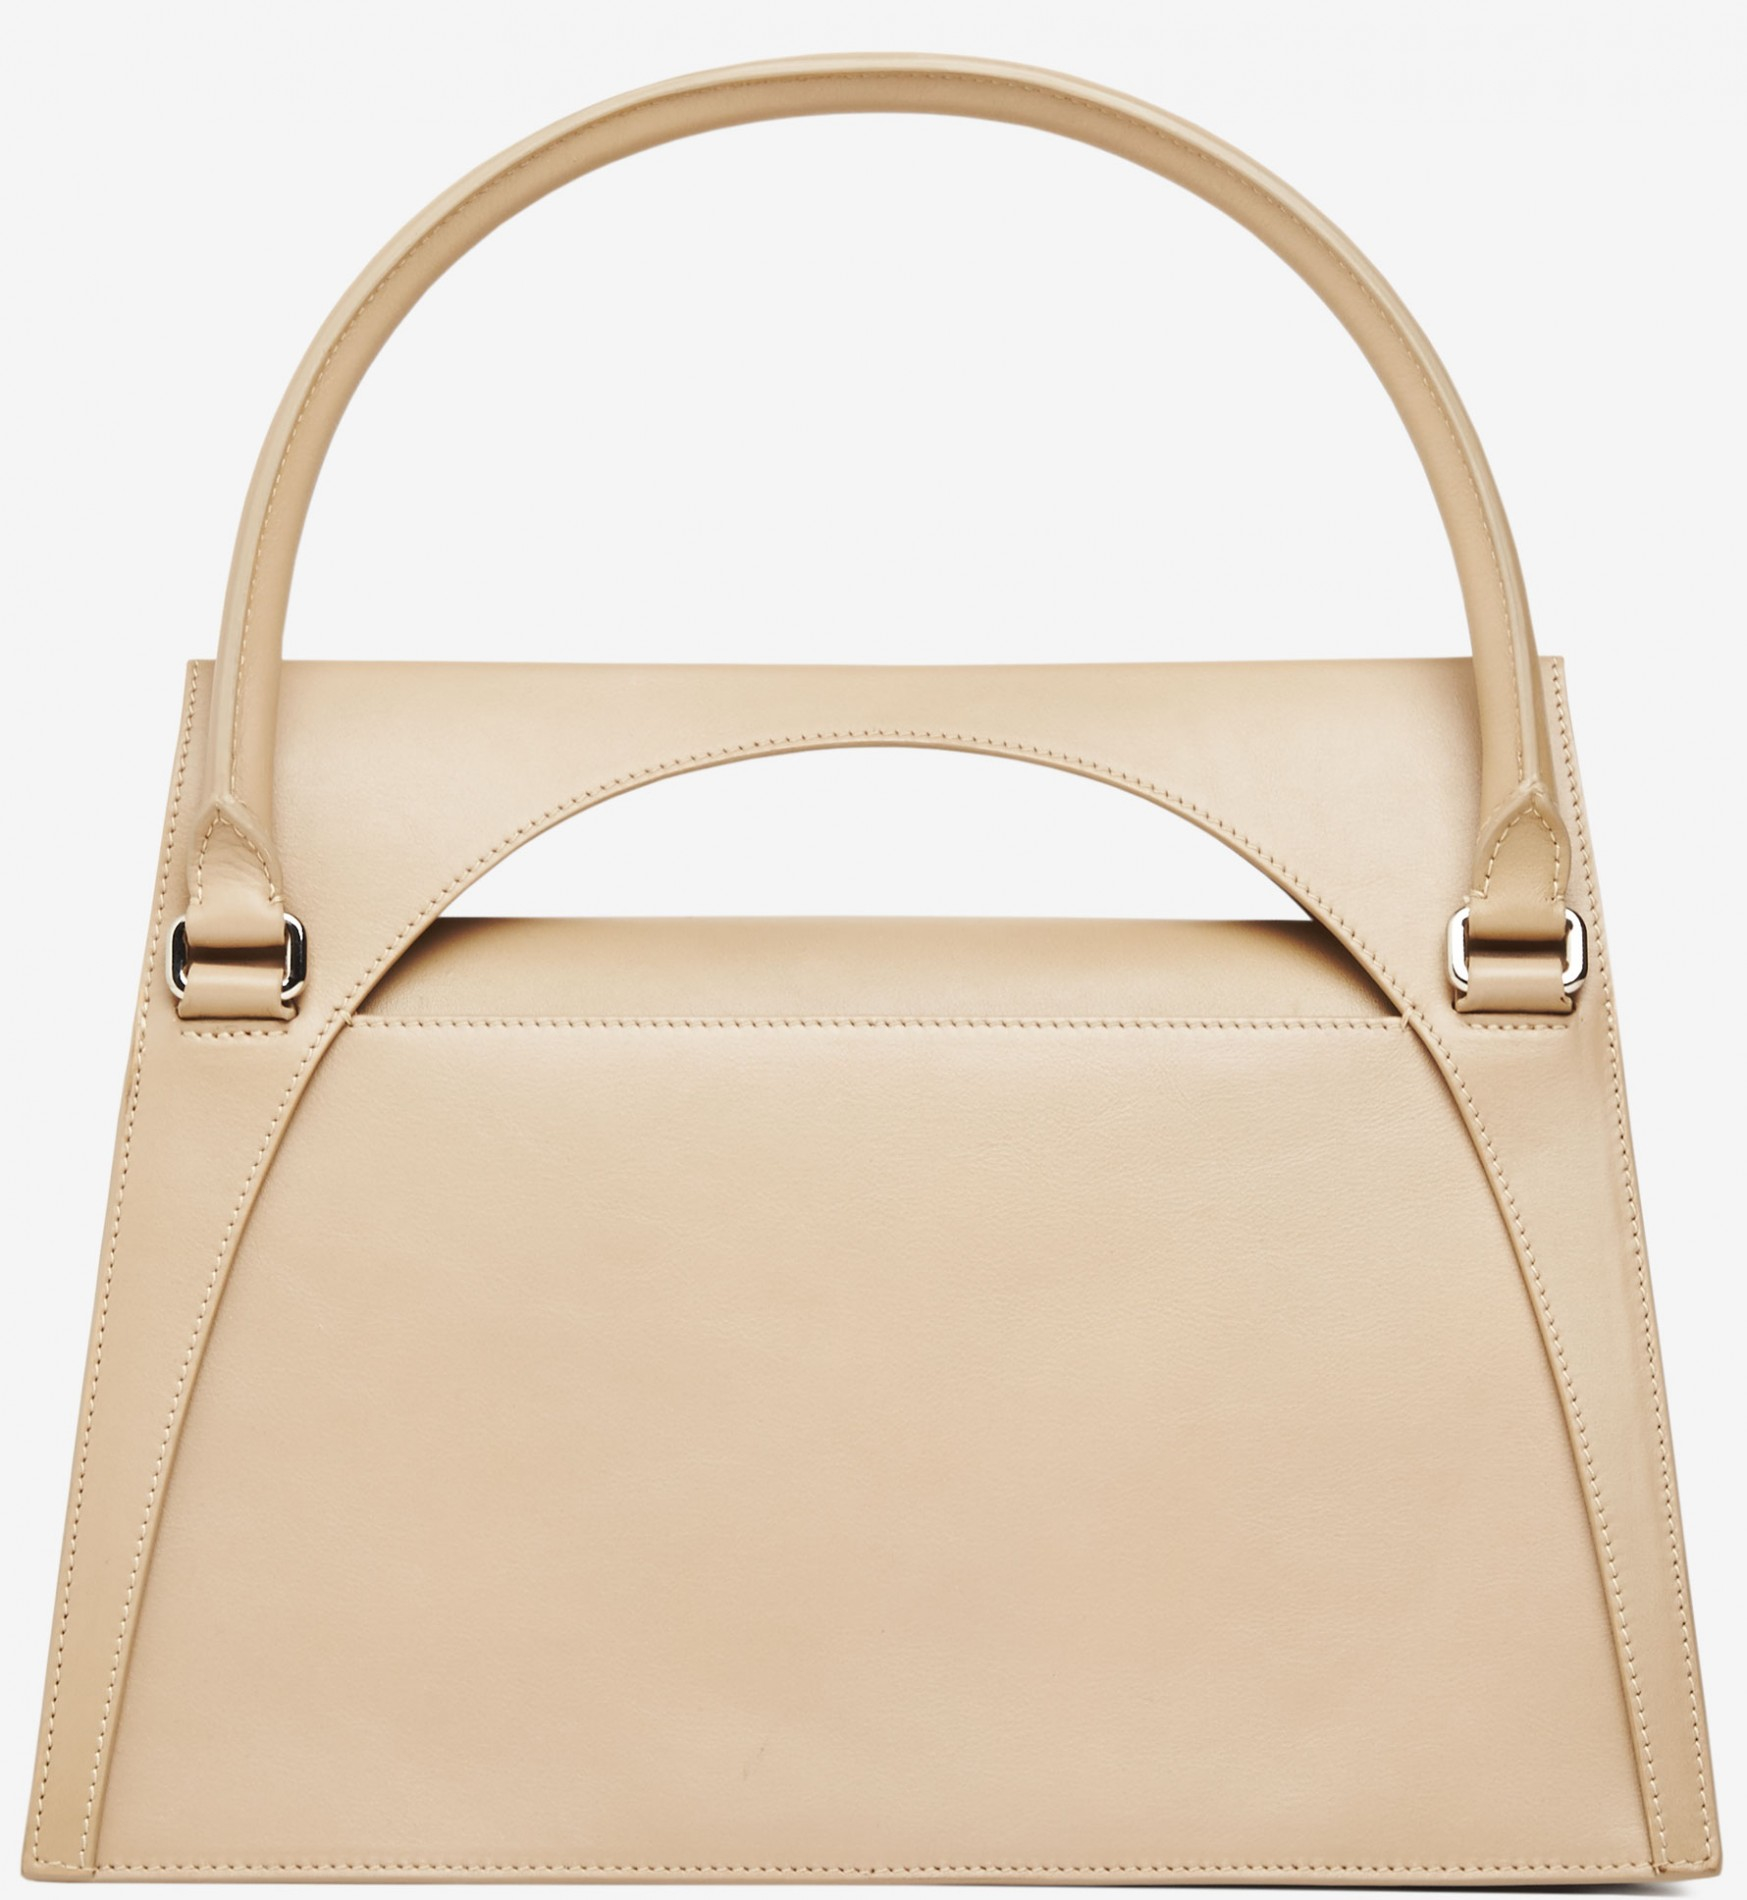 J.W.Anderson Sand Large Moon Bag in Natural - Lyst 7328bfa84f0d3